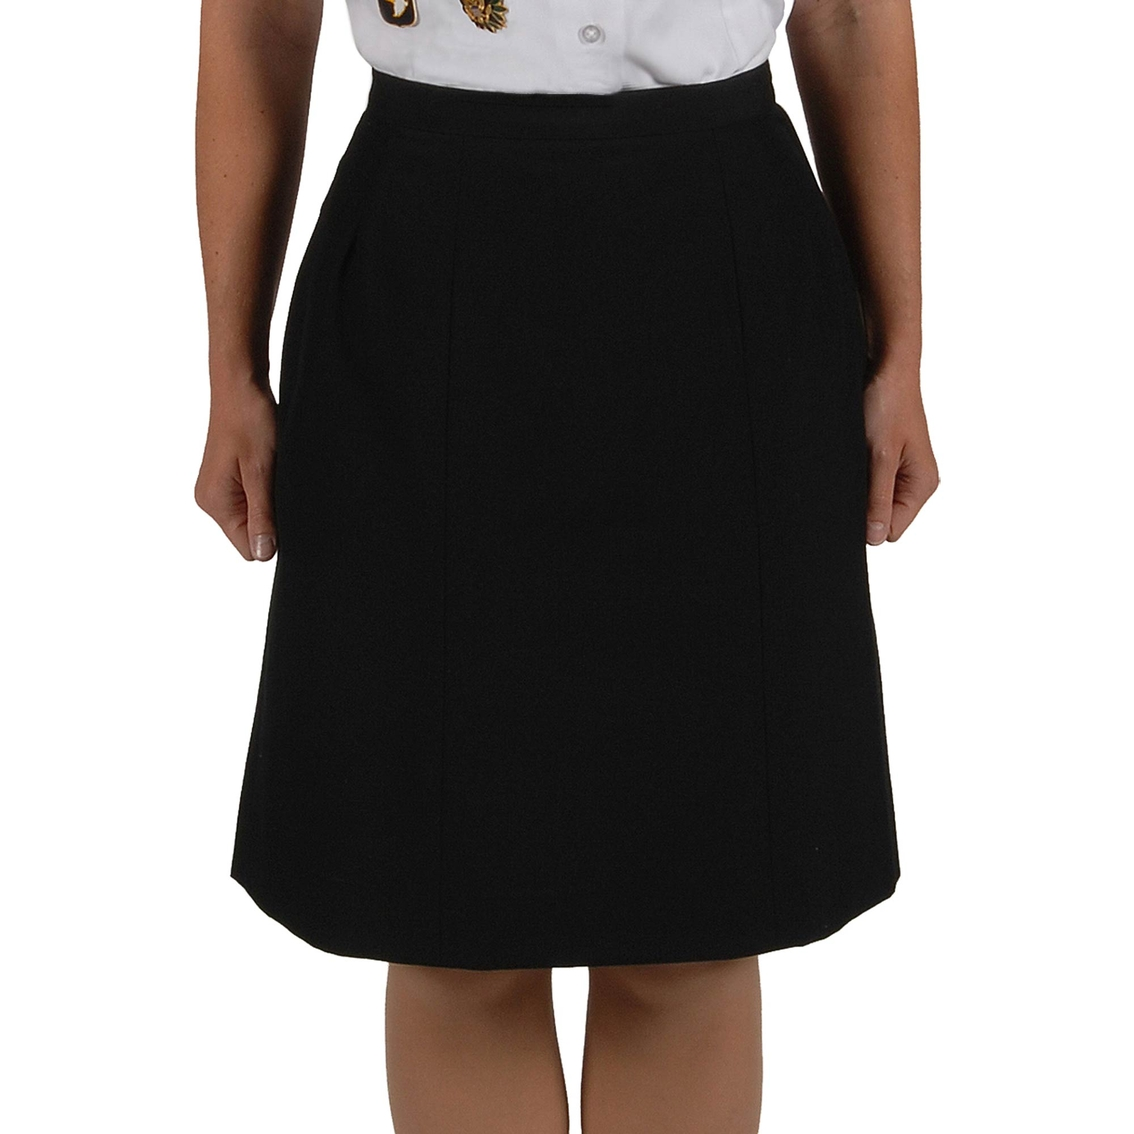 Army Enlisted Officer S Dress Blue Asu Skirt Pants Skirts